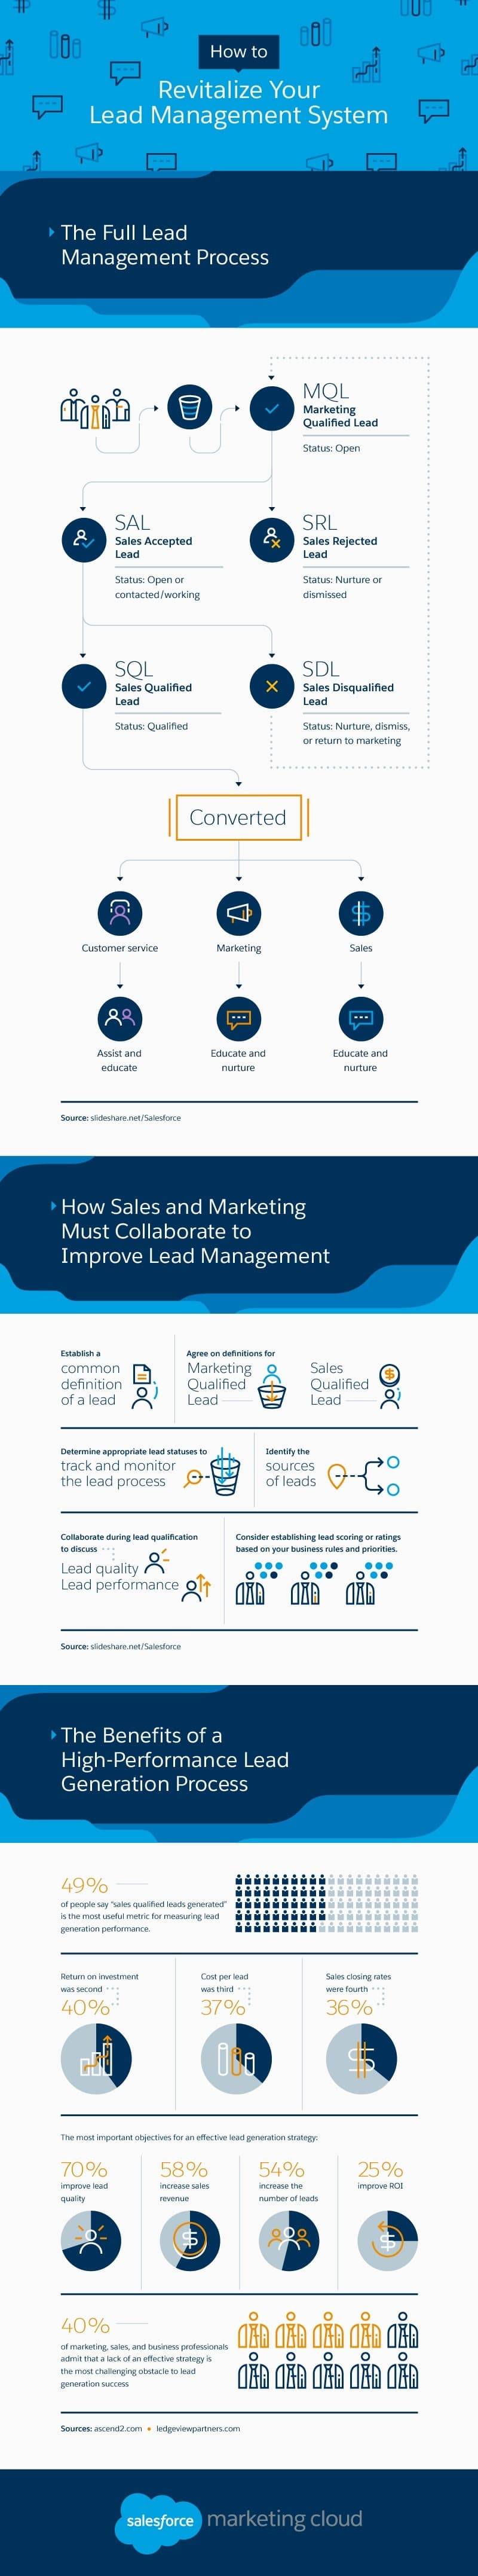 How To Revitalize Your Lead Management System